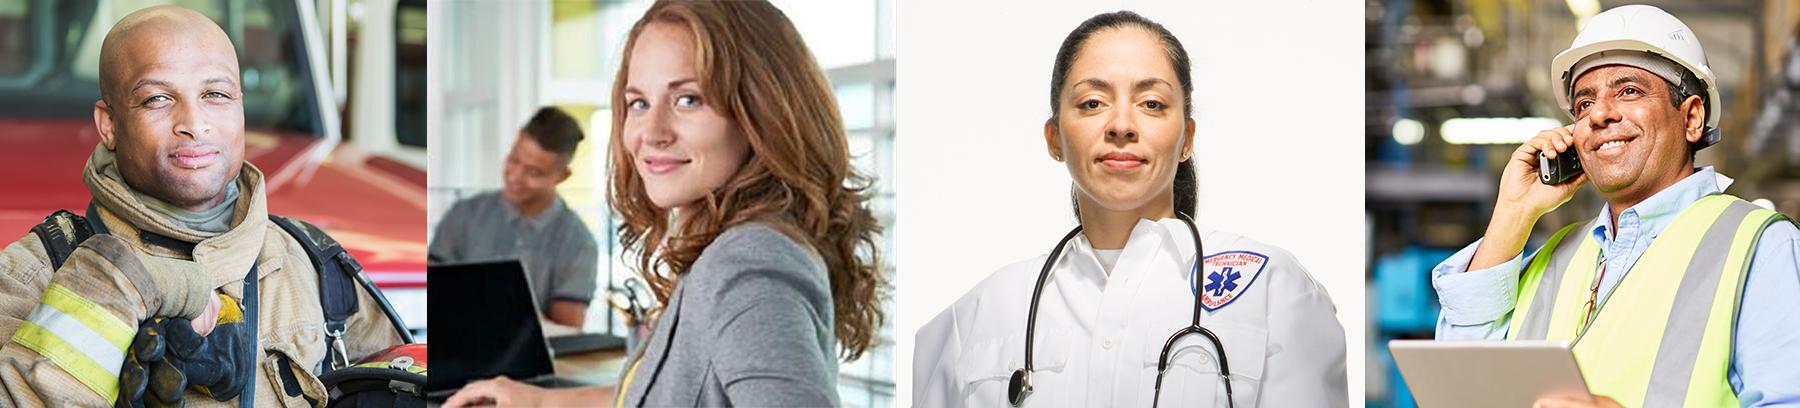 Diverse continuing education and customized training header image